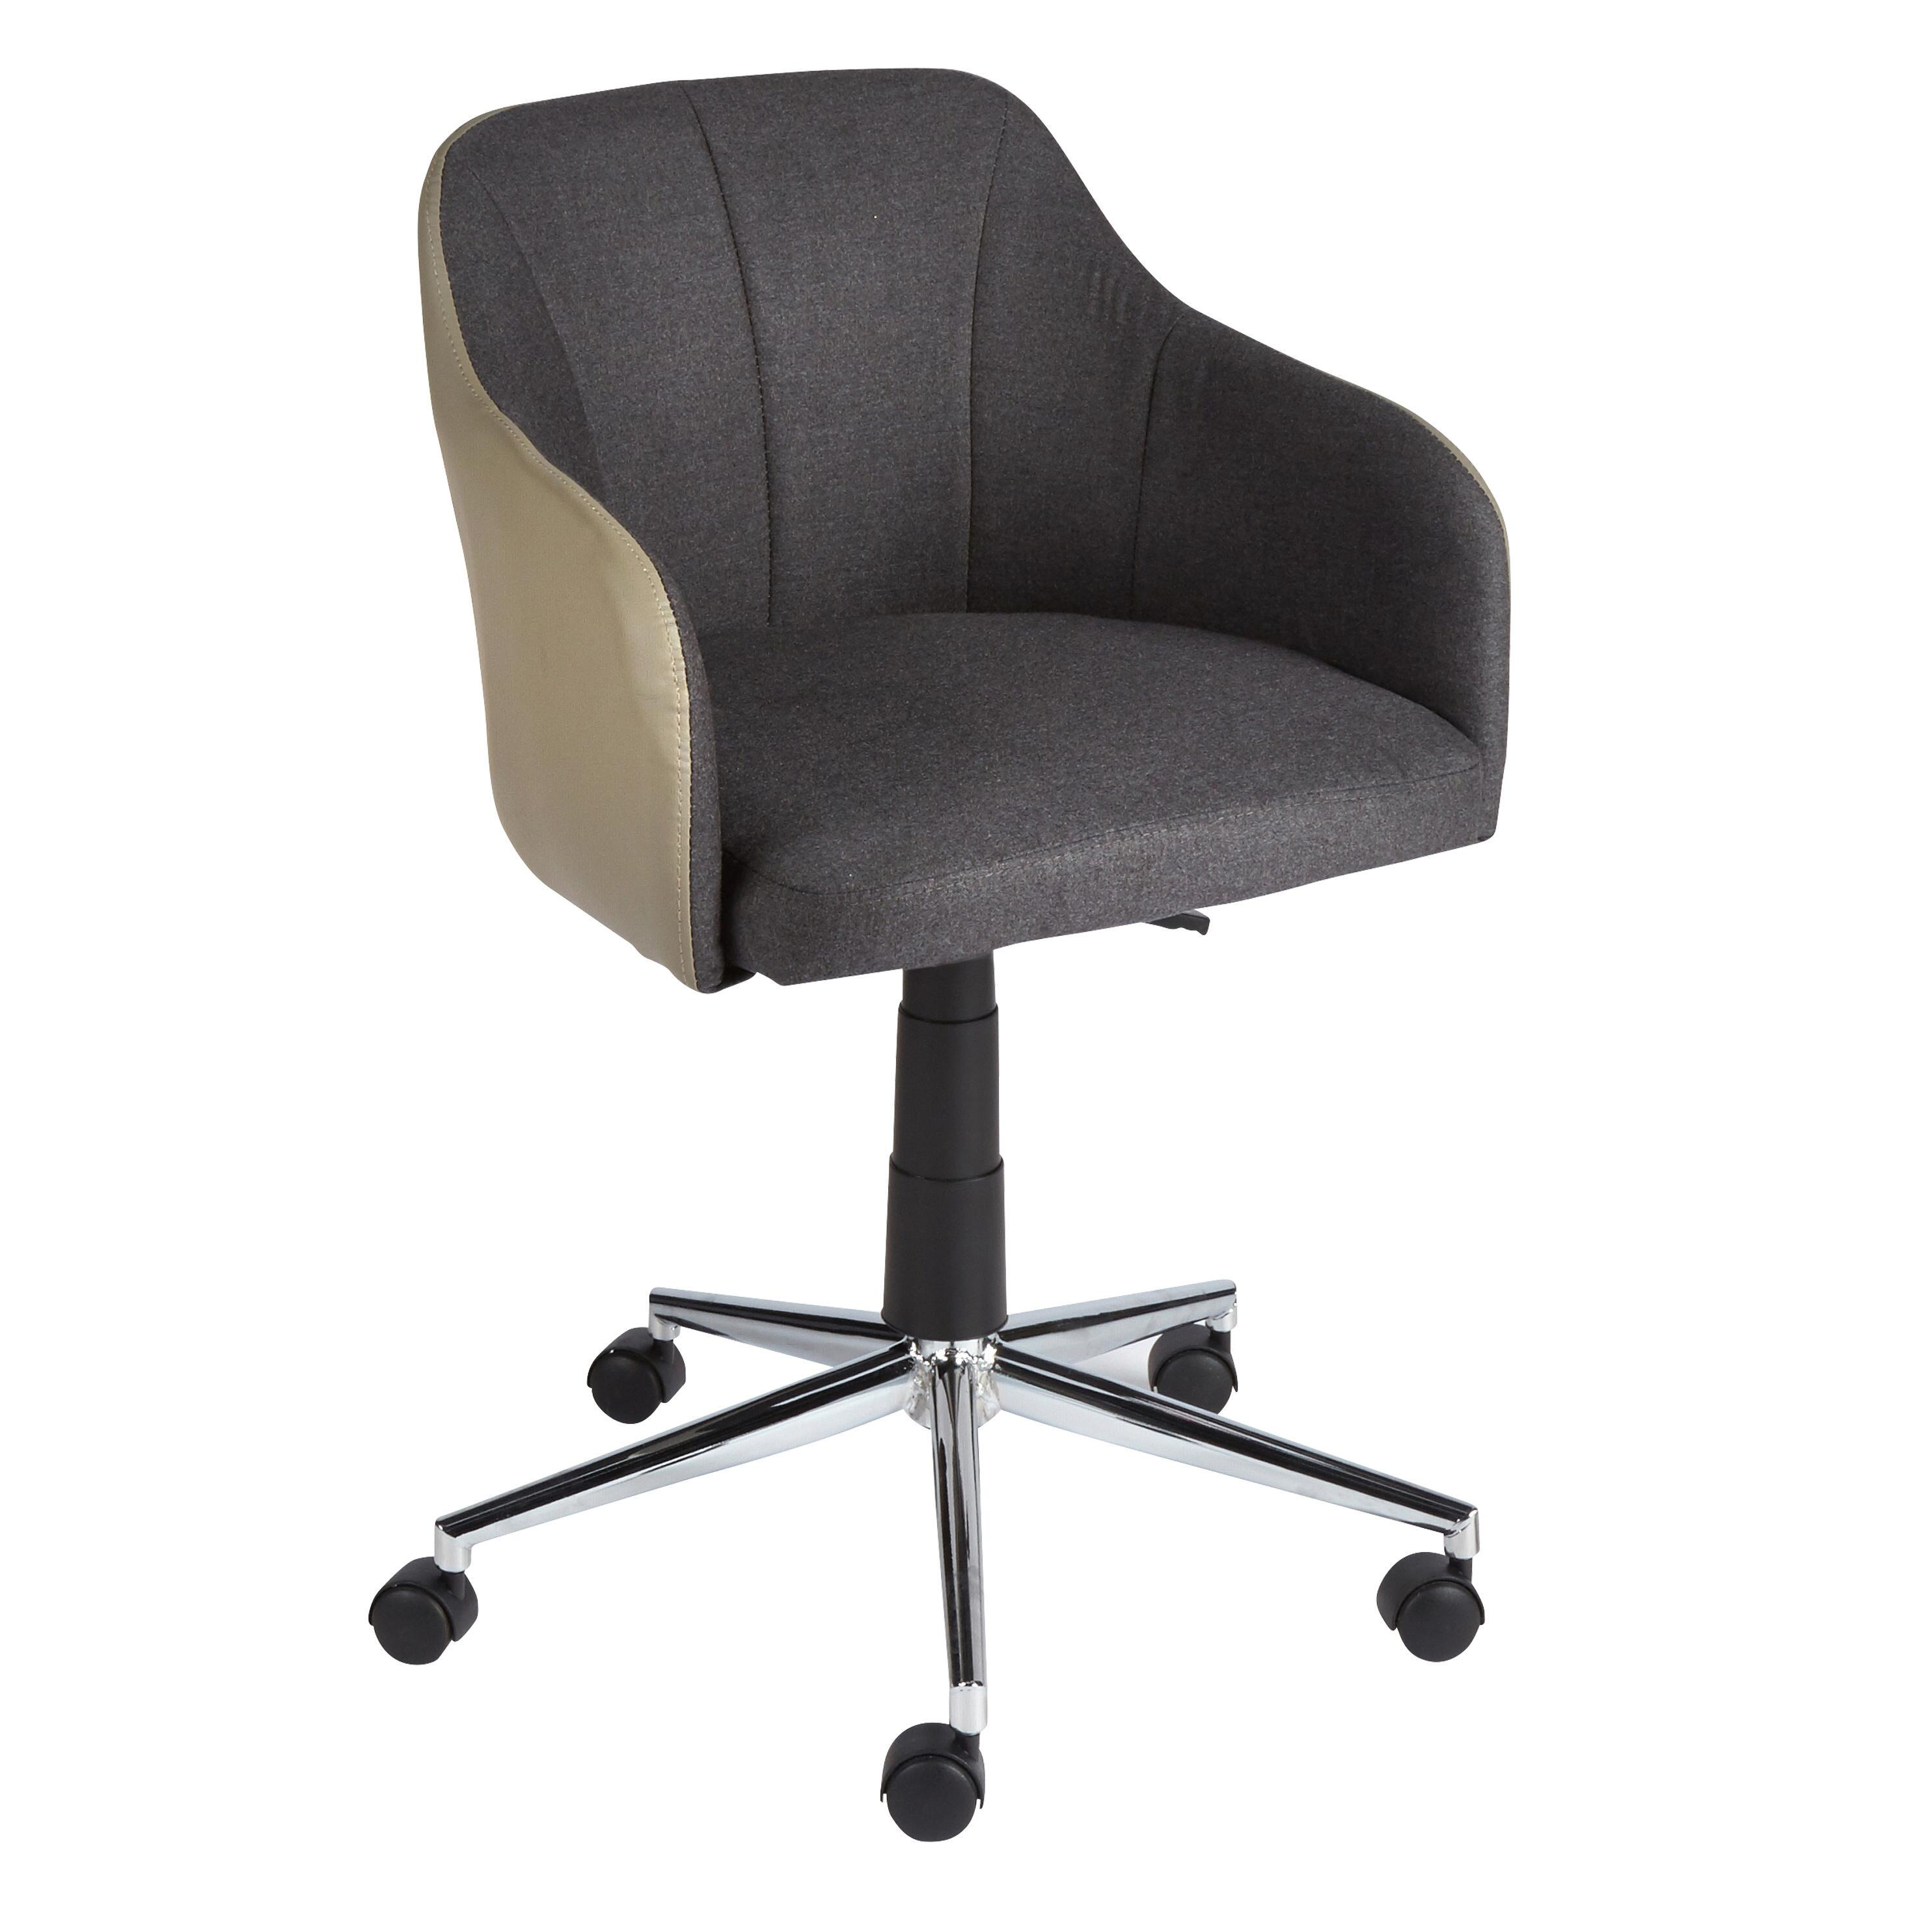 Two-Tone Rolling Office Chair - Christmas Tree Shops and That!